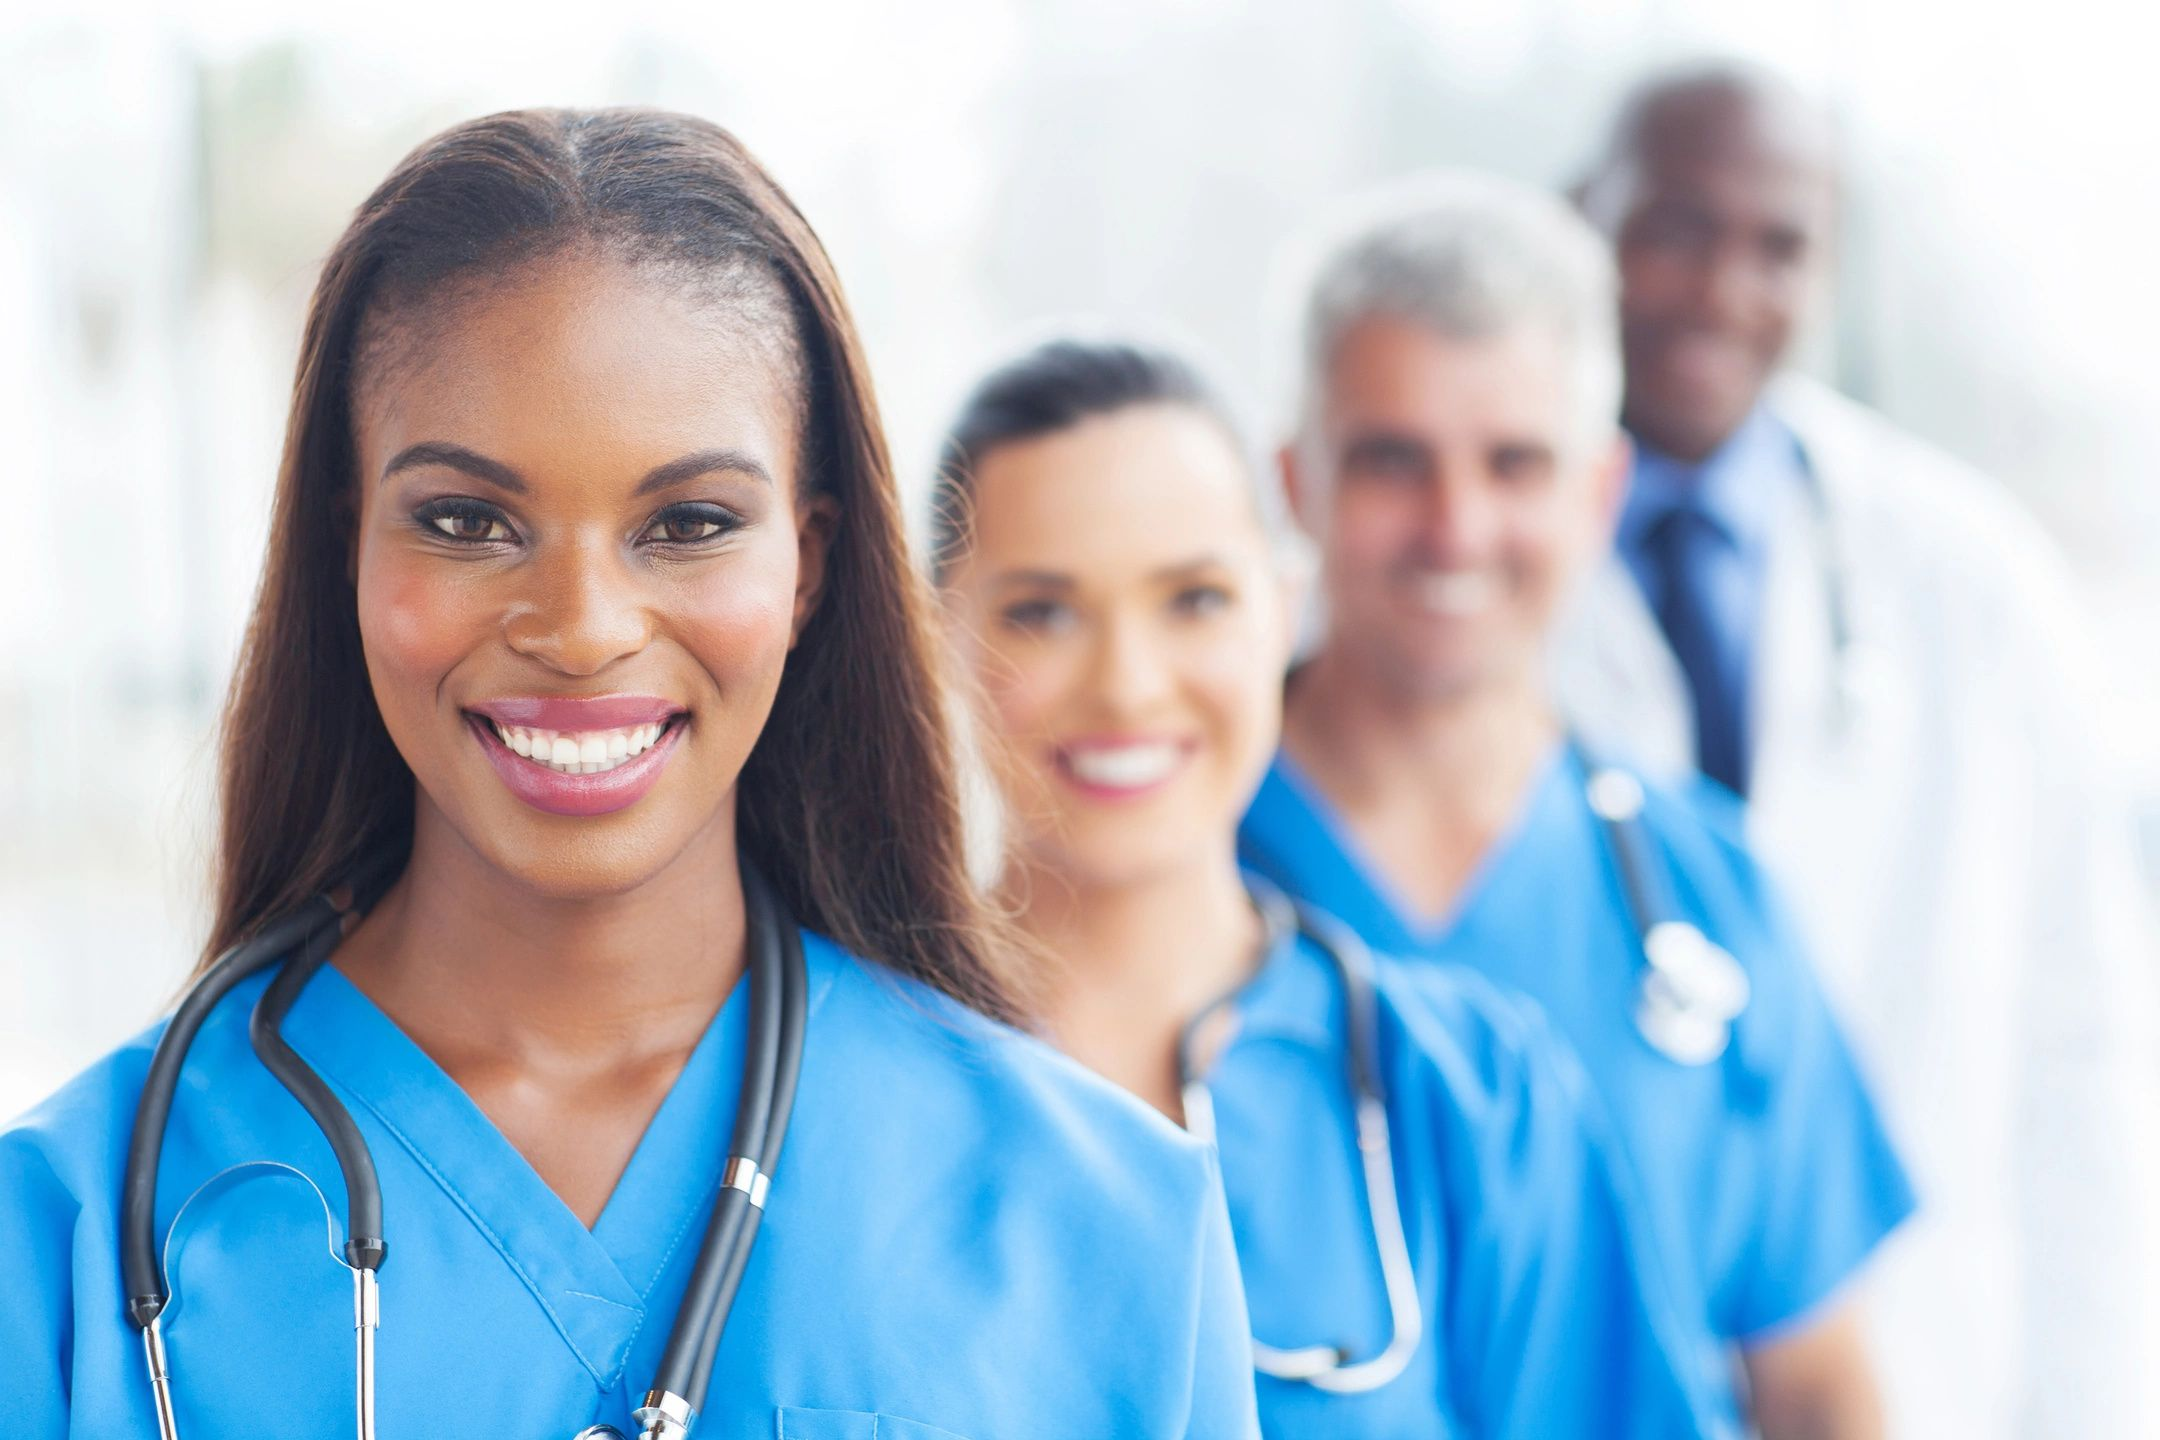 Four healthcare workers stand in a line going away from the camera